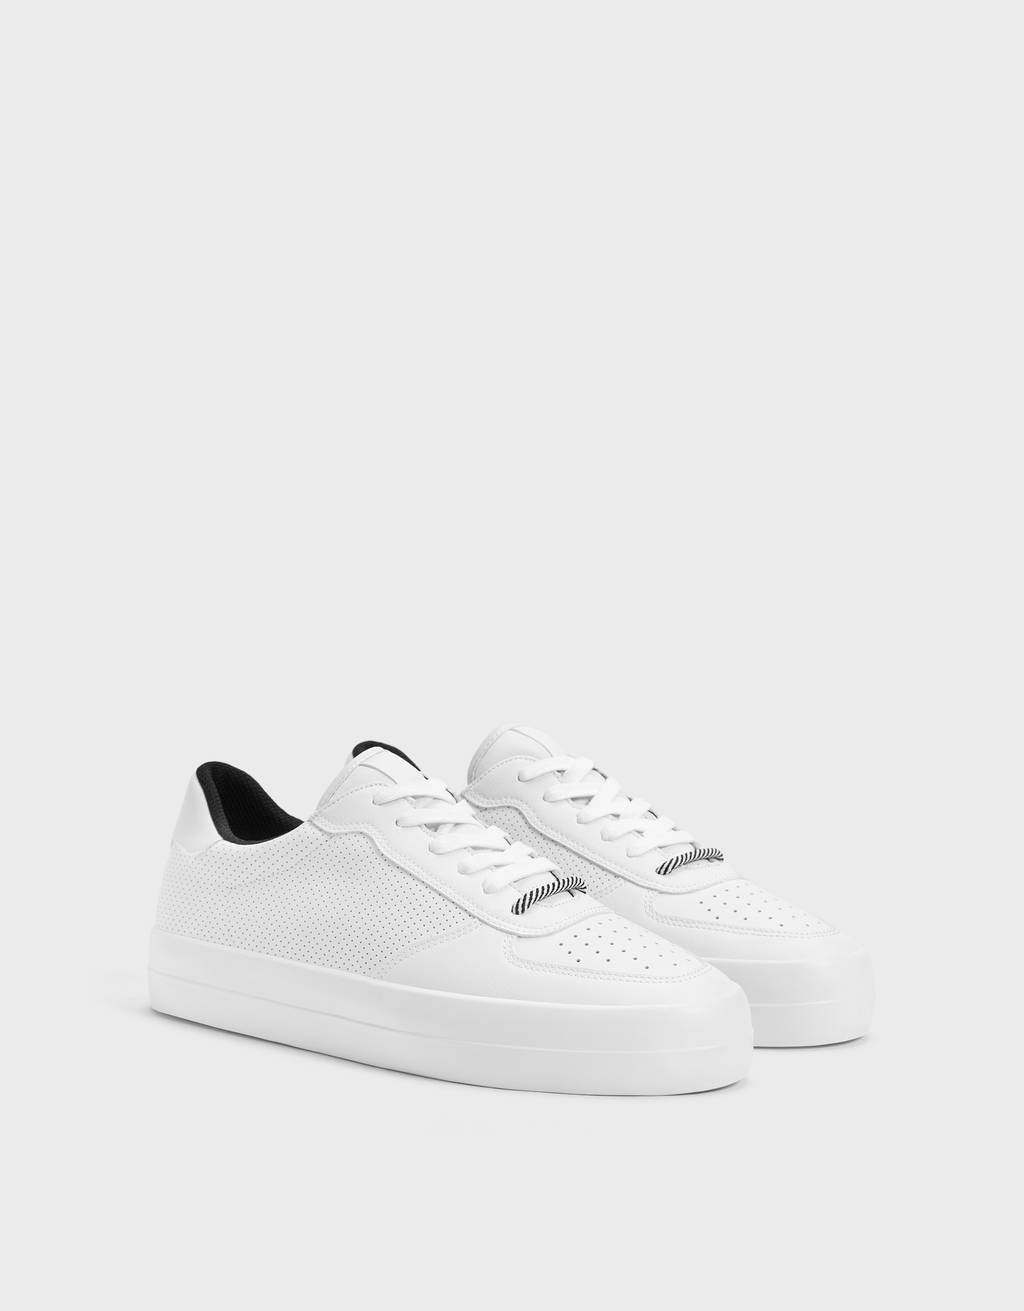 Men's perforated trainers